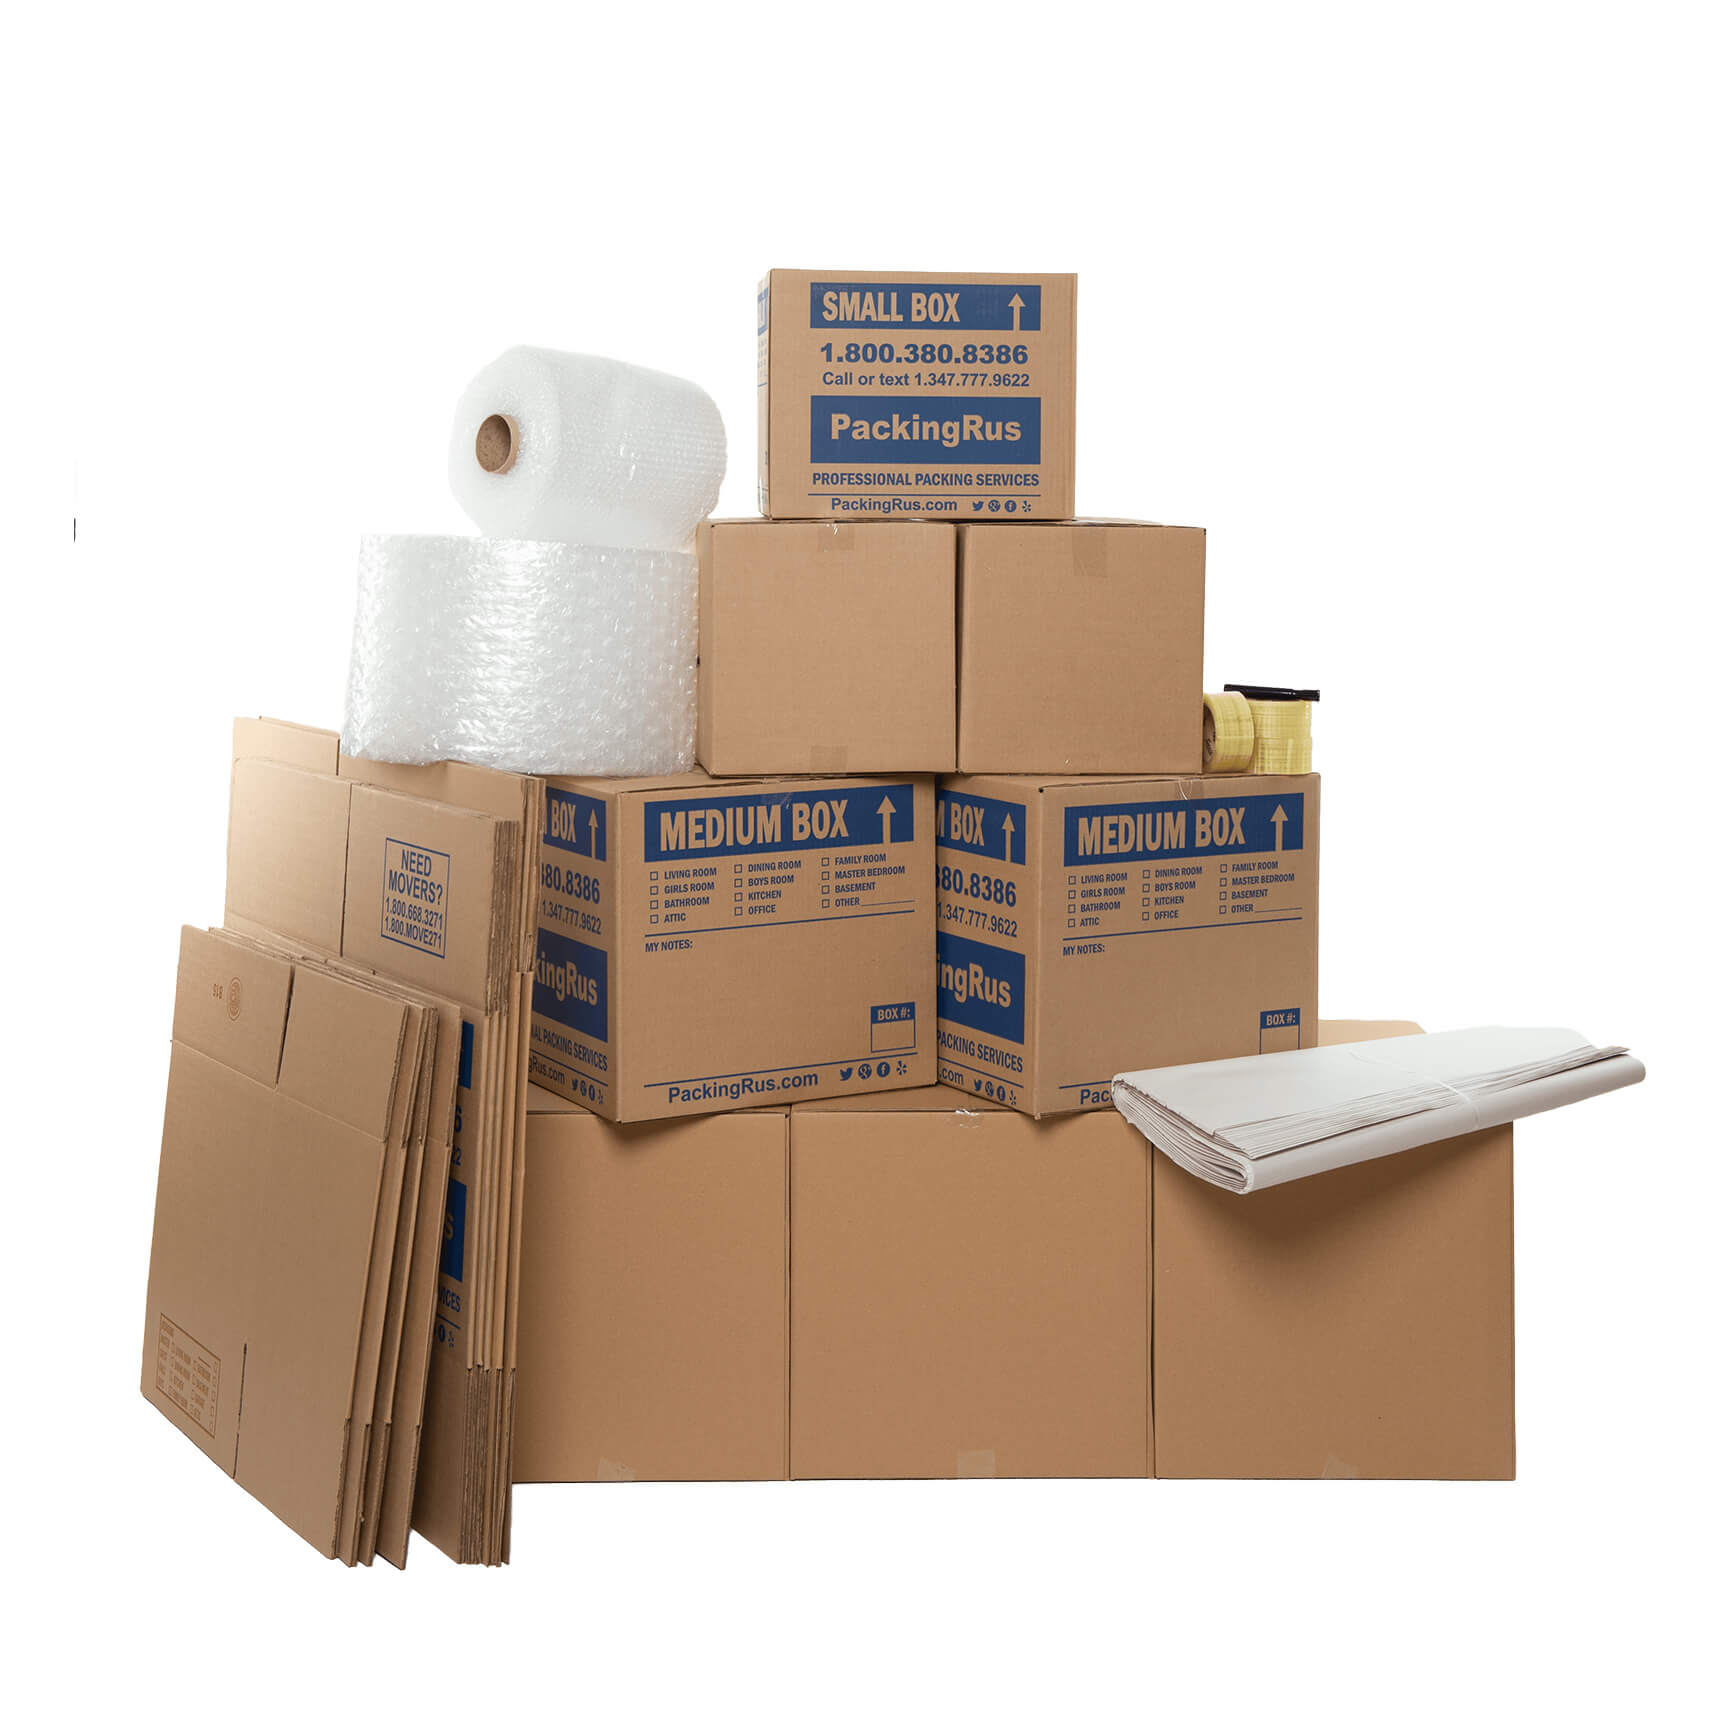 Four Bedroom Moving Kit (Medium) | Kits | Packing R Us | NYC